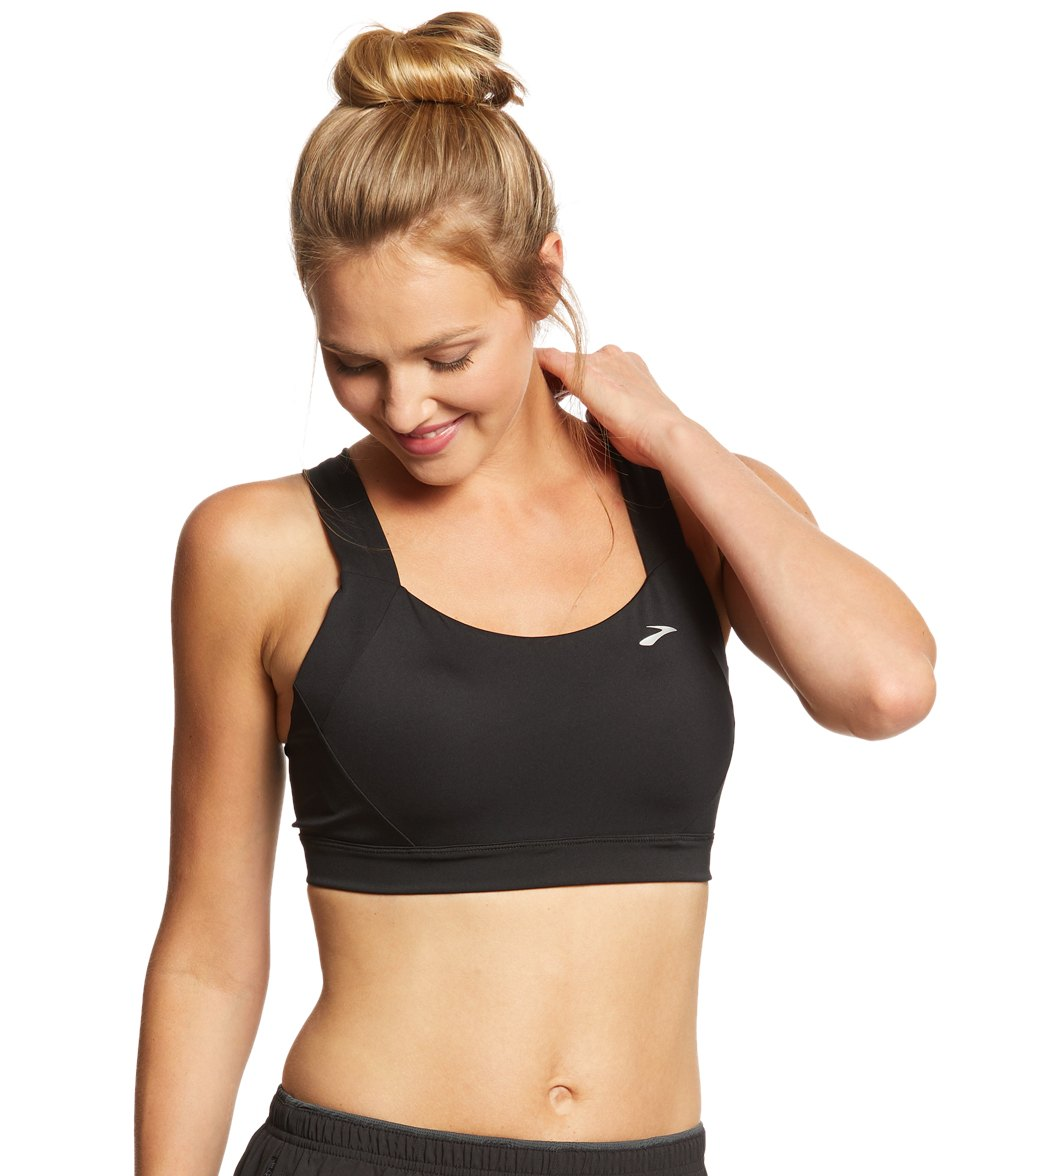 ae6ce8340fca1 Brooks Women's Uphold Crossback DD/E Cup Sports Bra at SwimOutlet.com